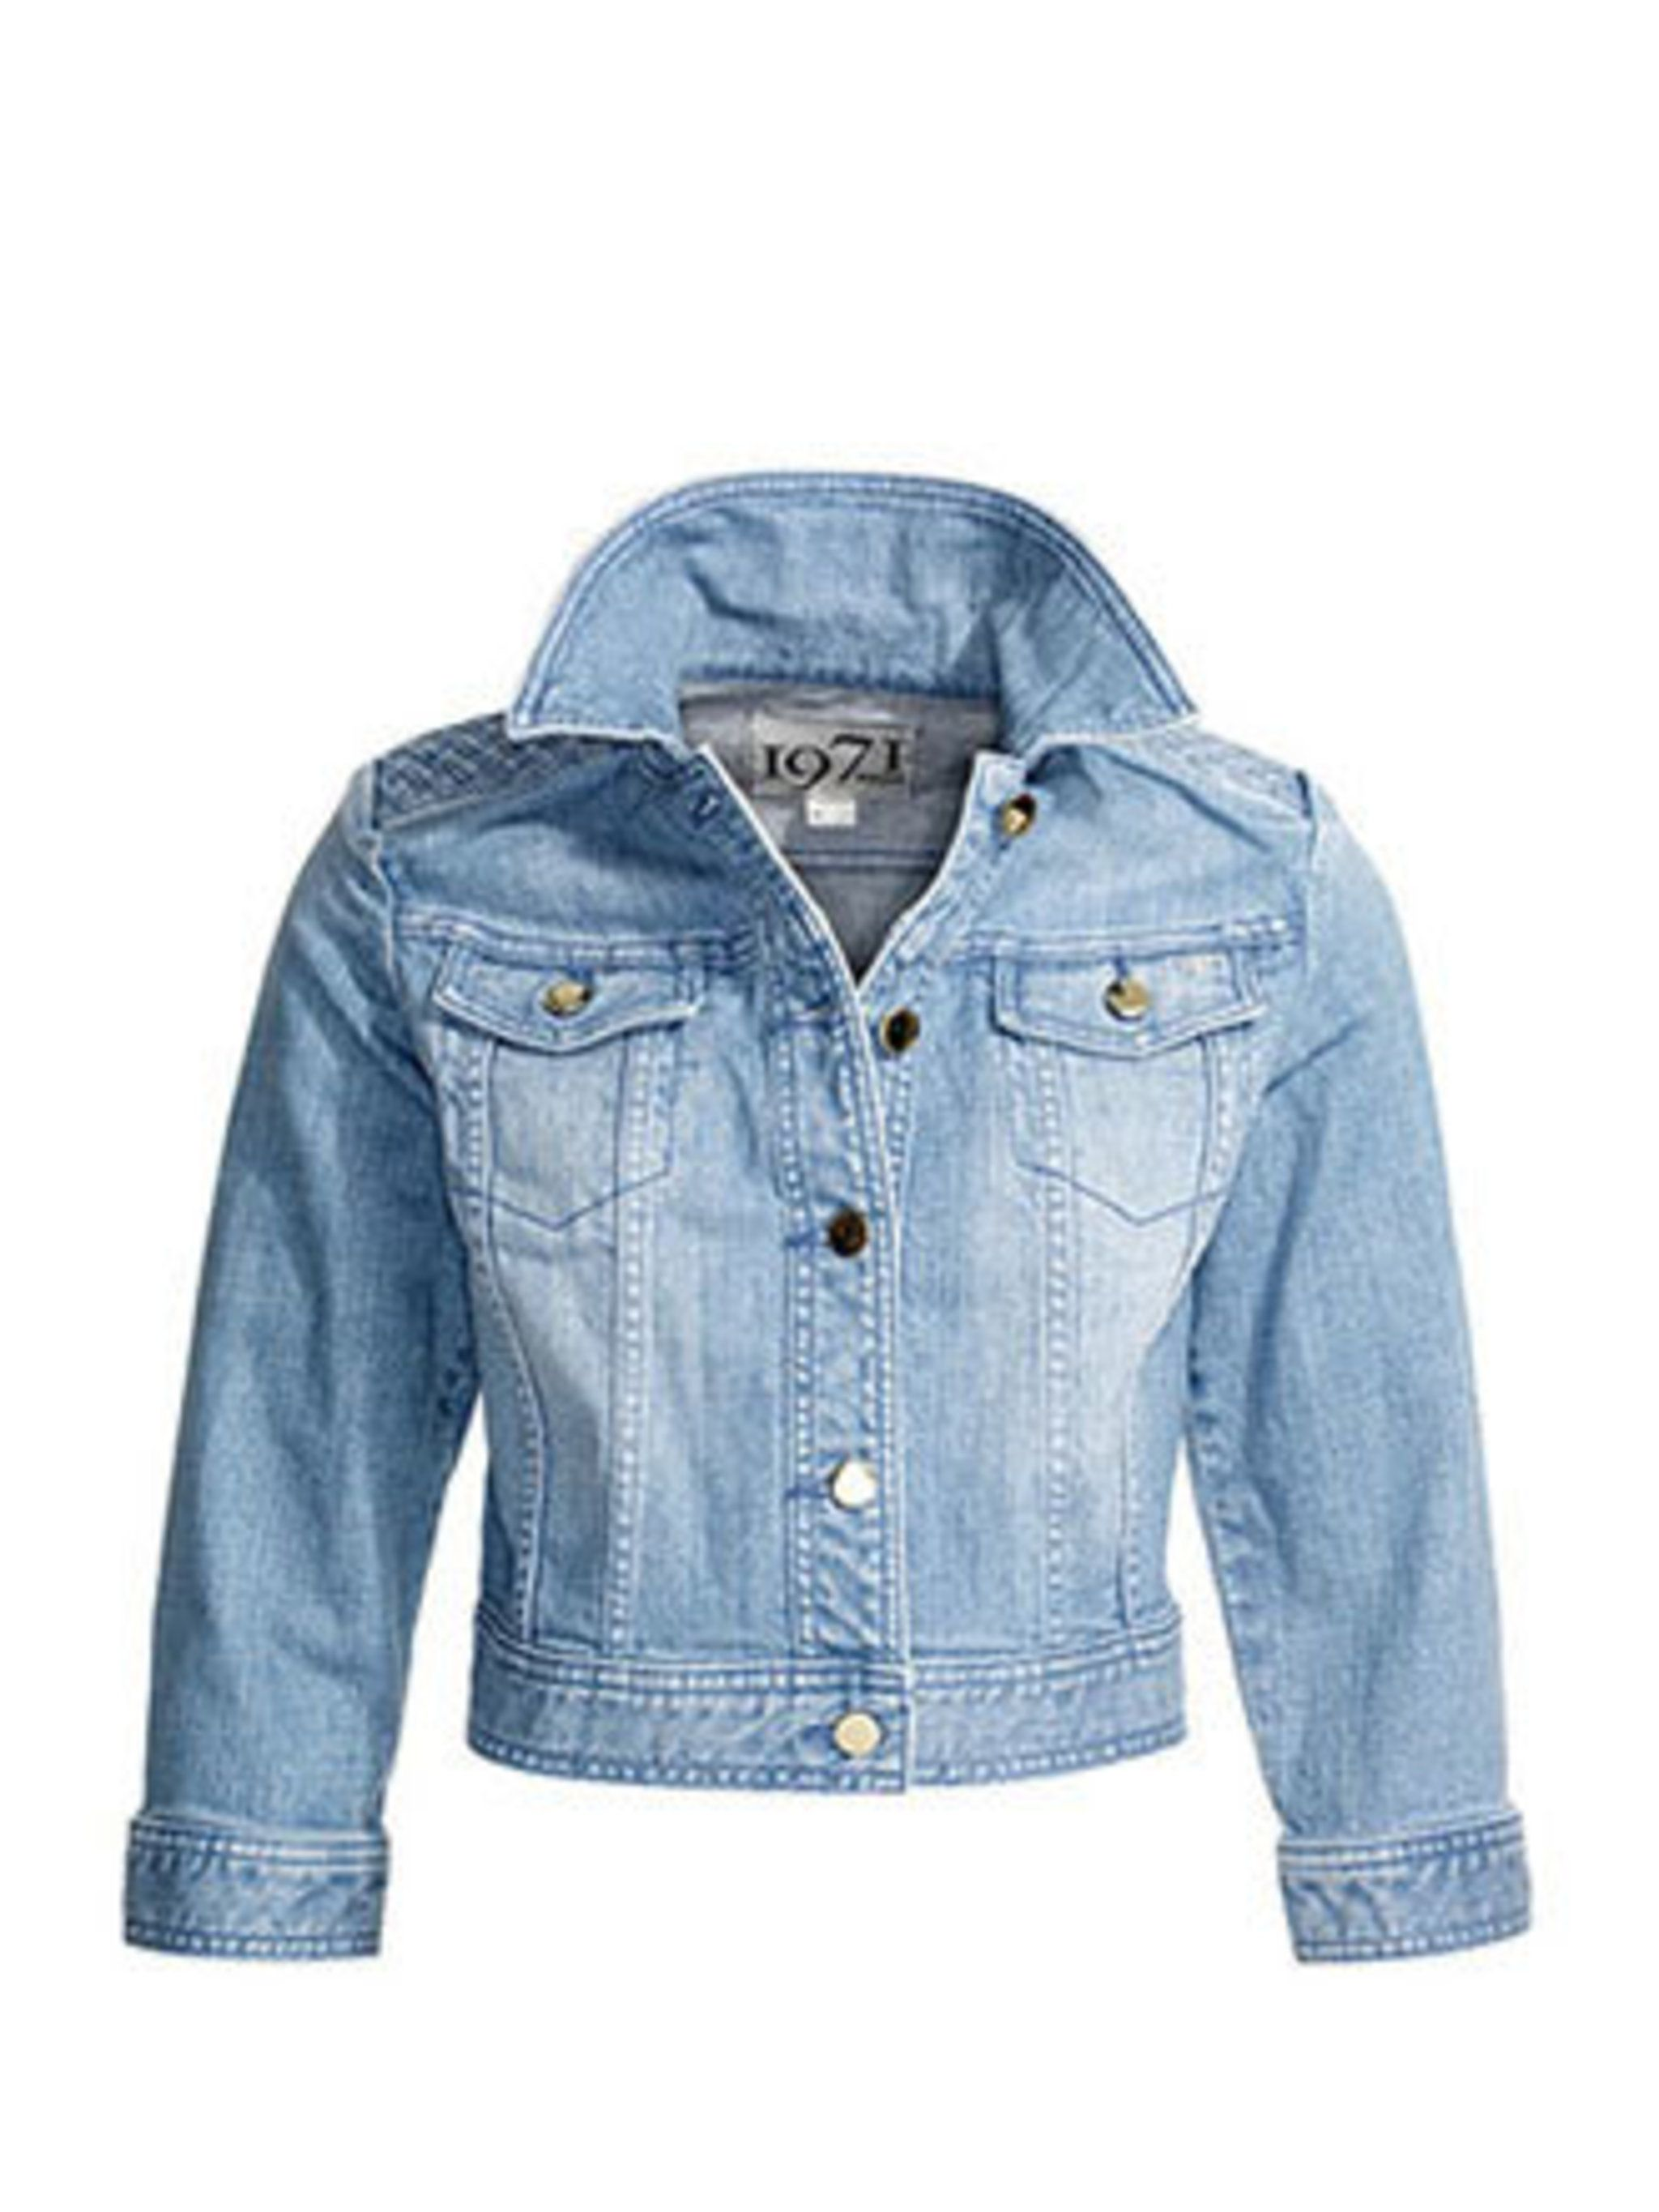 "<p>This fashion week I've spied people wearing their denim jackets under coats or layered under faux fur waistcoats and stoles. Get this and get inventive.</p><p>Jacket, £129 by <a href=""http://www.reiss.co.uk/shop/womens/casual_jackets/brandon/denim_710/"